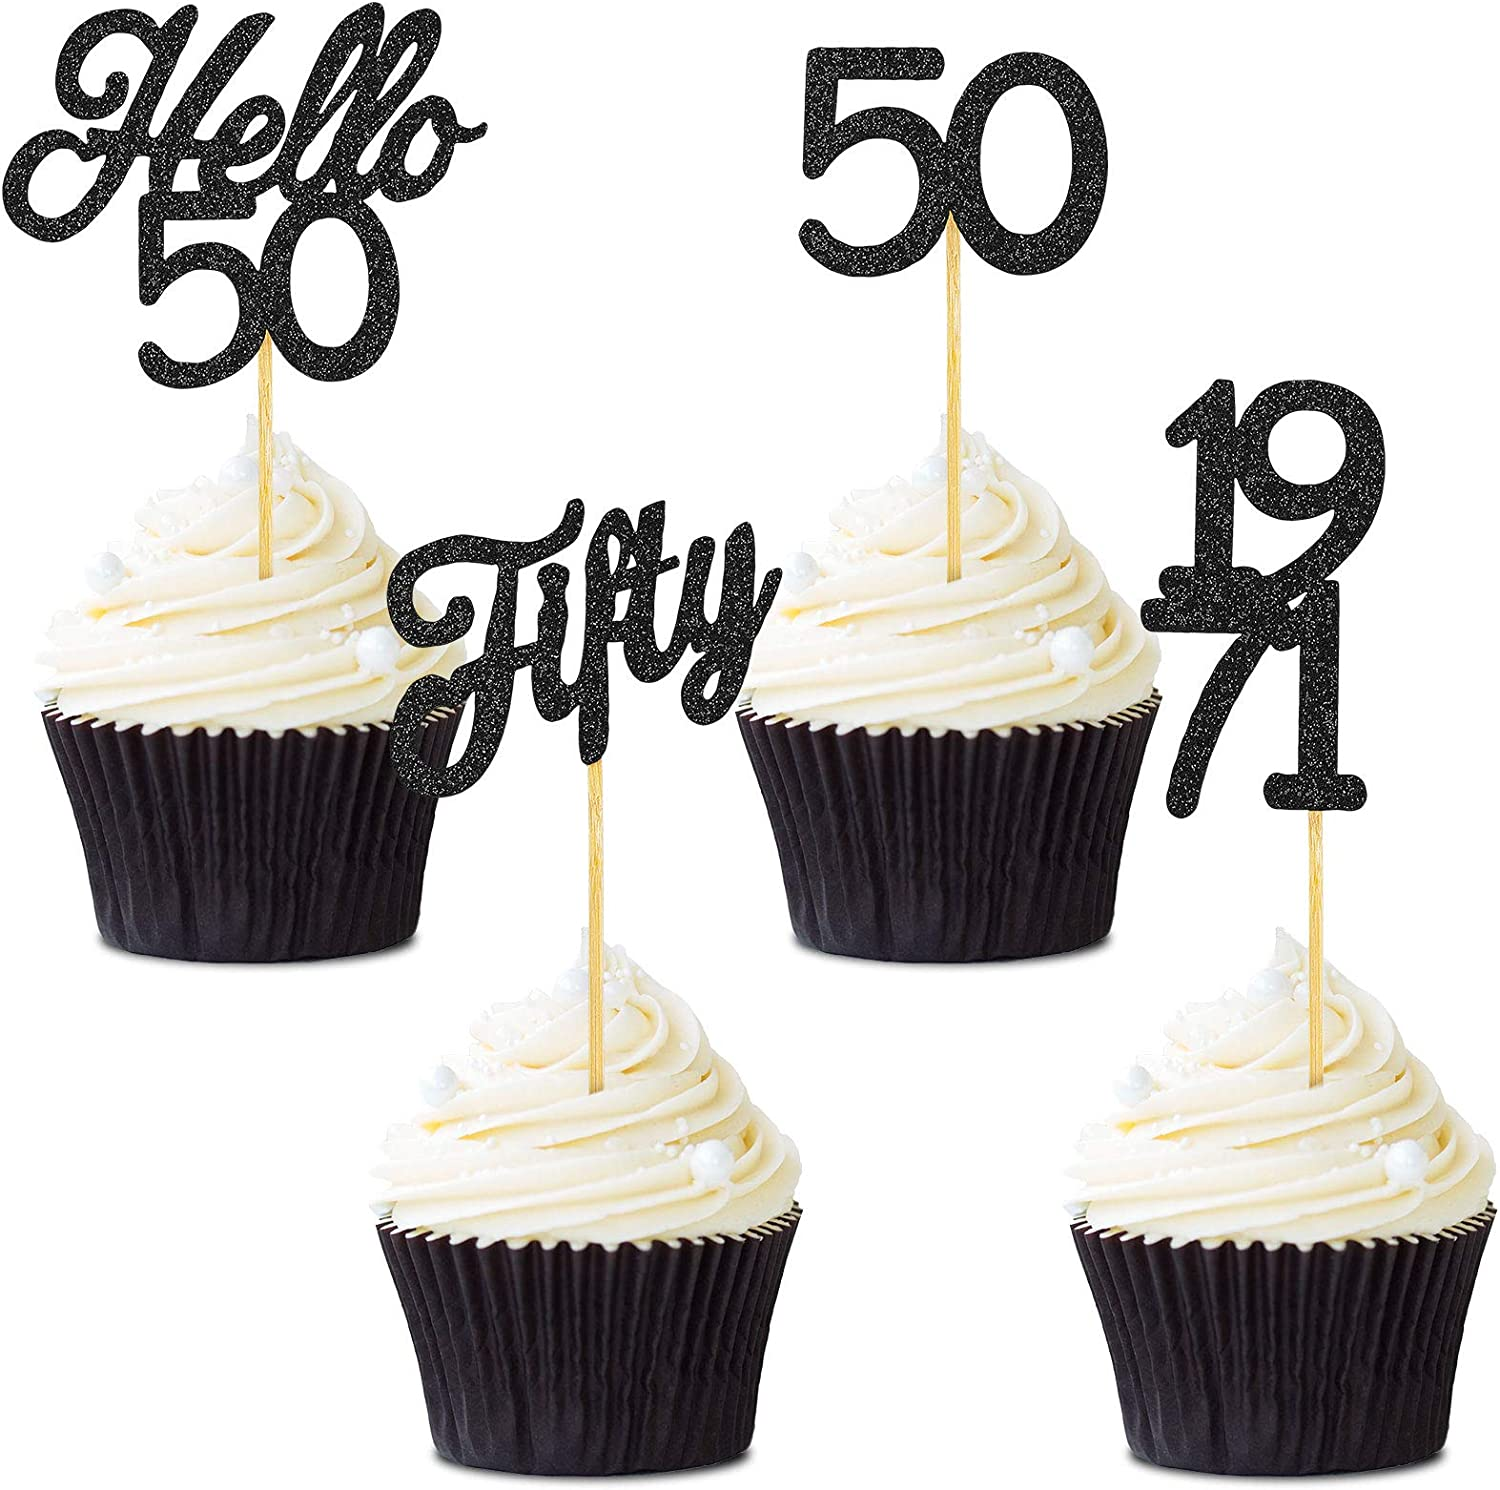 48 Pieces Glitter Hello 50 Birthday Cupcake Toppers Fifty 1971 Picks Anniversary Party Cake Toppers Decorations for 50th Anniversary Birthday Party Wedding Decorations (Black)